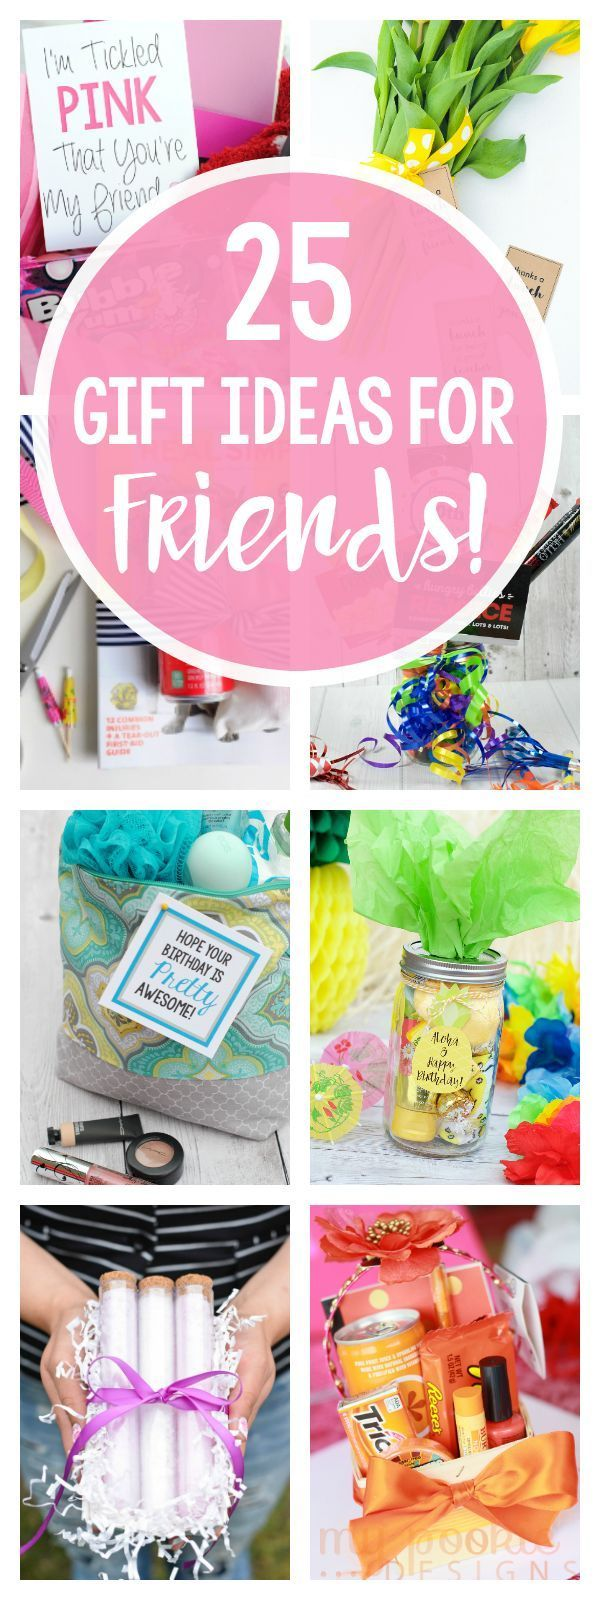 60 best friendship gifts images on pinterest friendship gifts 25 fun gifts for best friends for any occasion negle Gallery